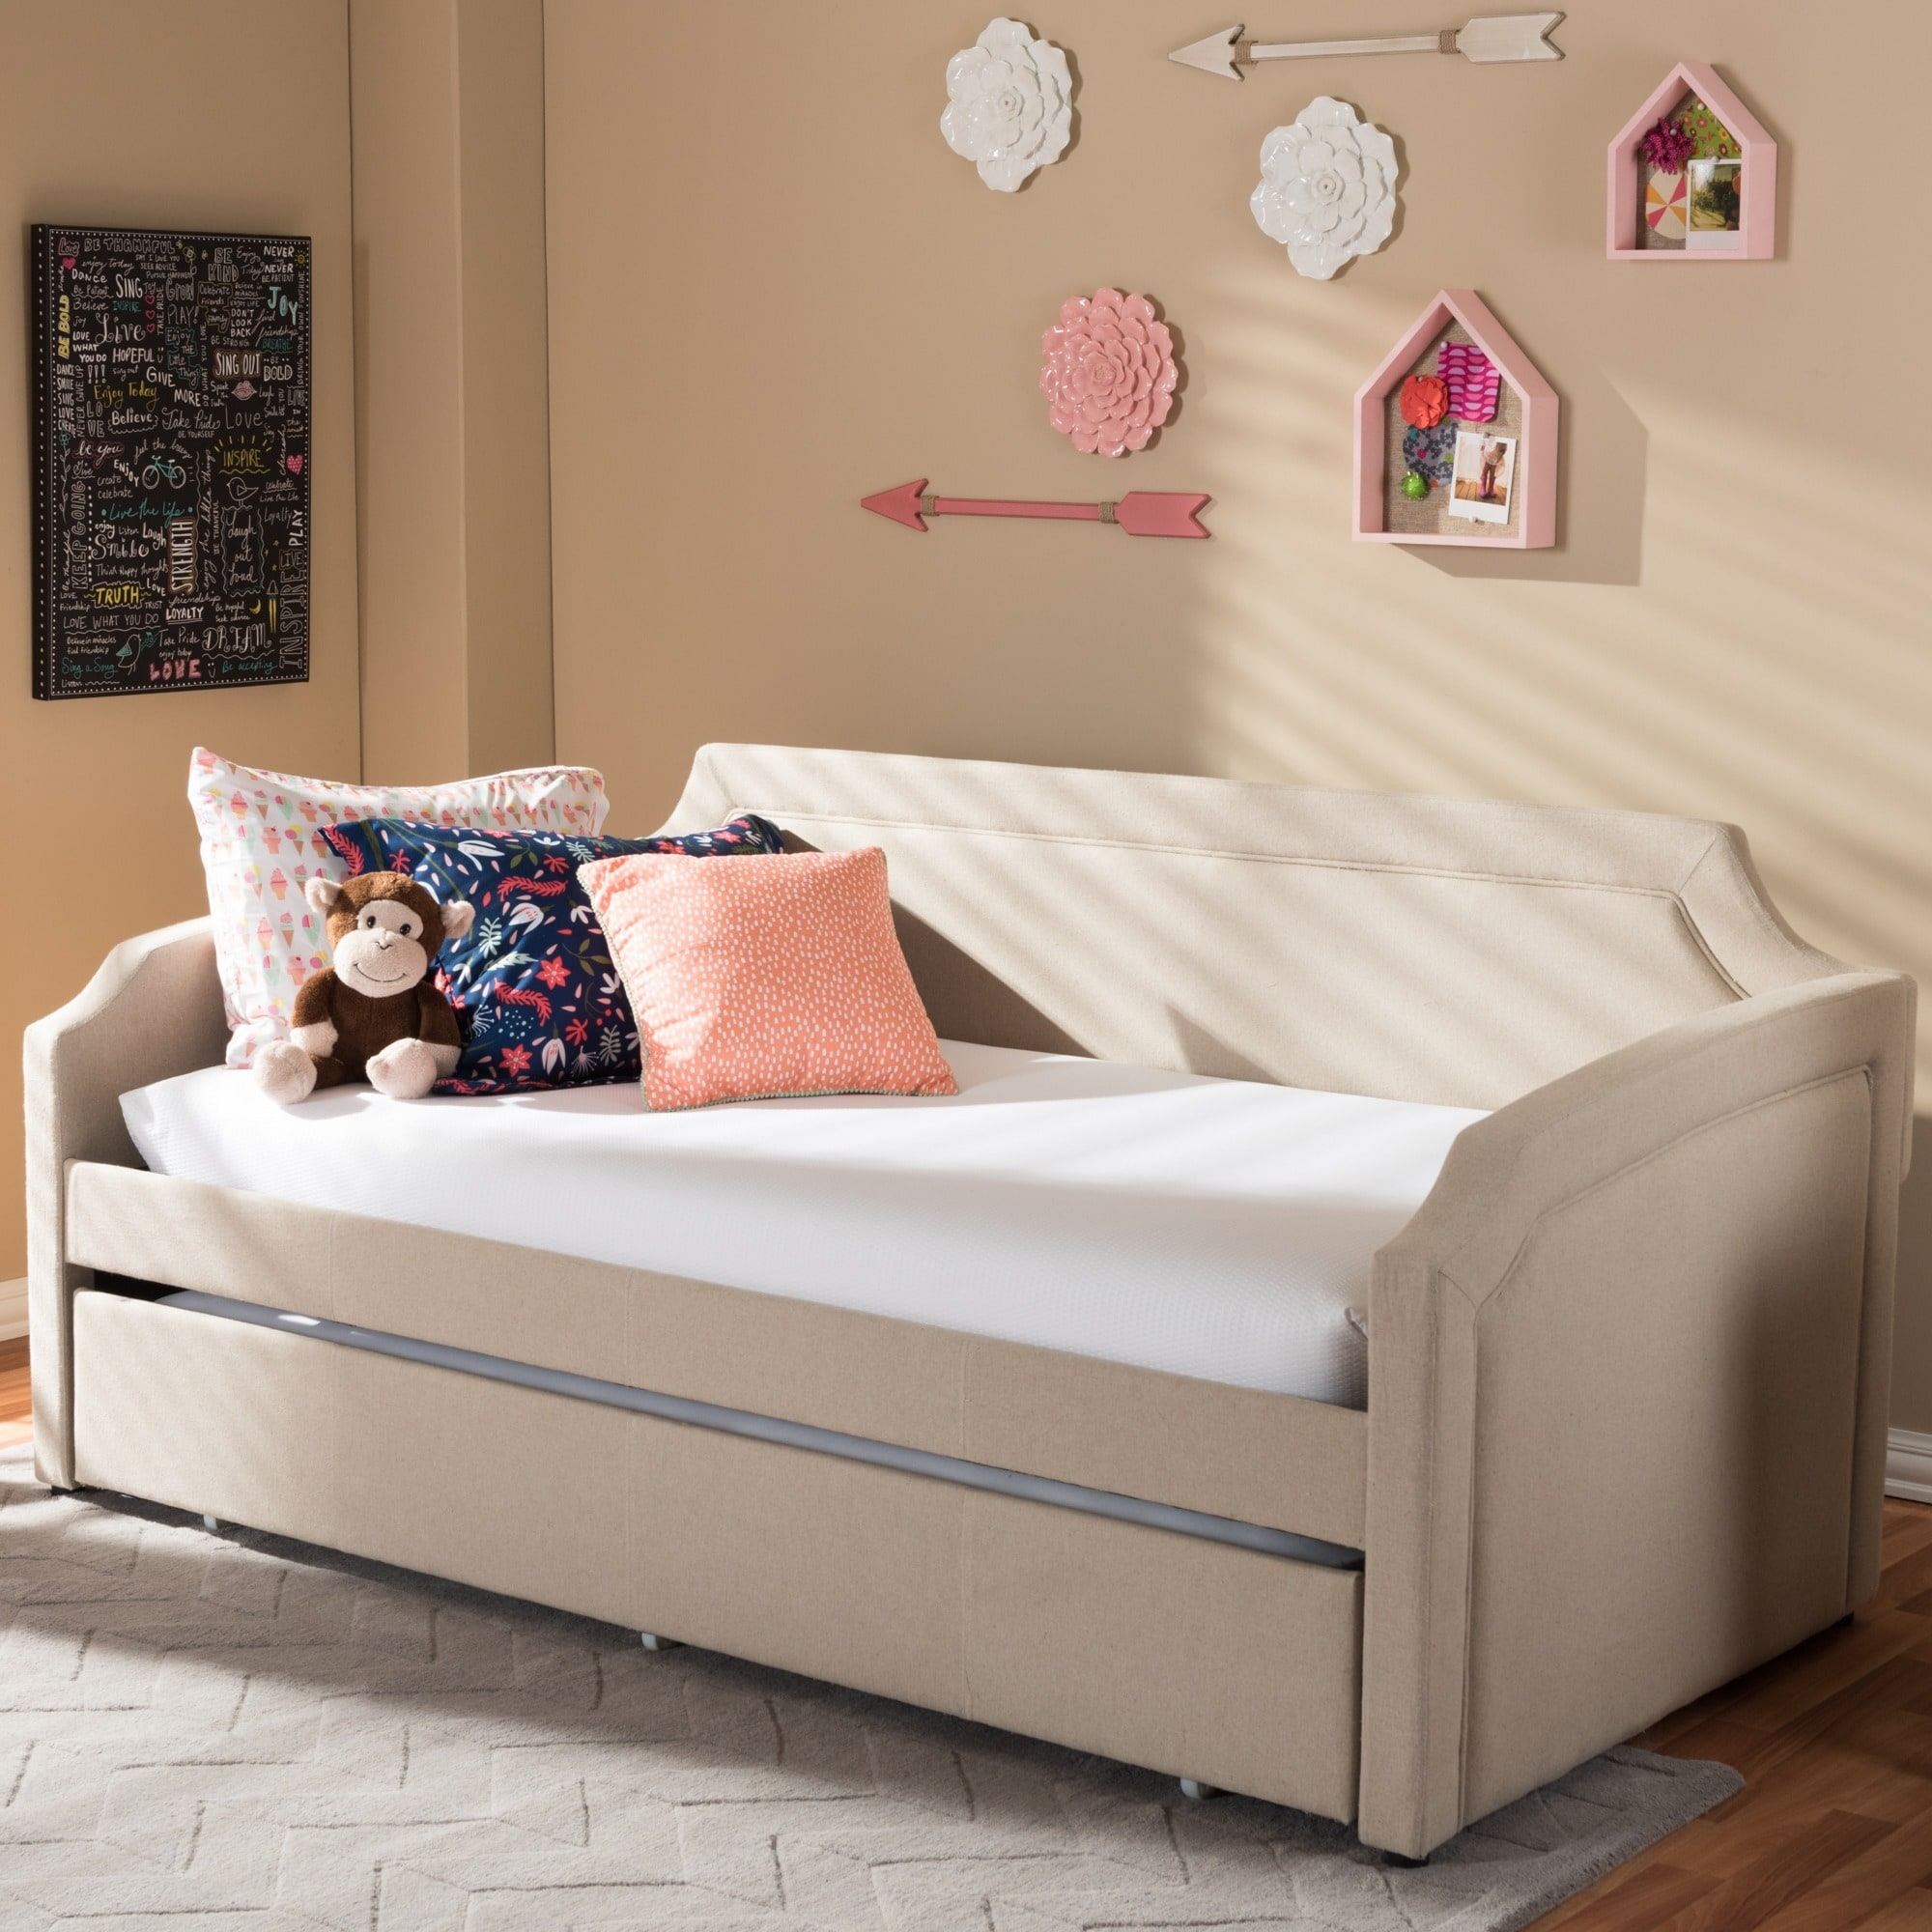 max for ideas bedding vogue and marble with bed cool bedroom your floor teen beds studio bedspreads spade teens kate contemporary decor